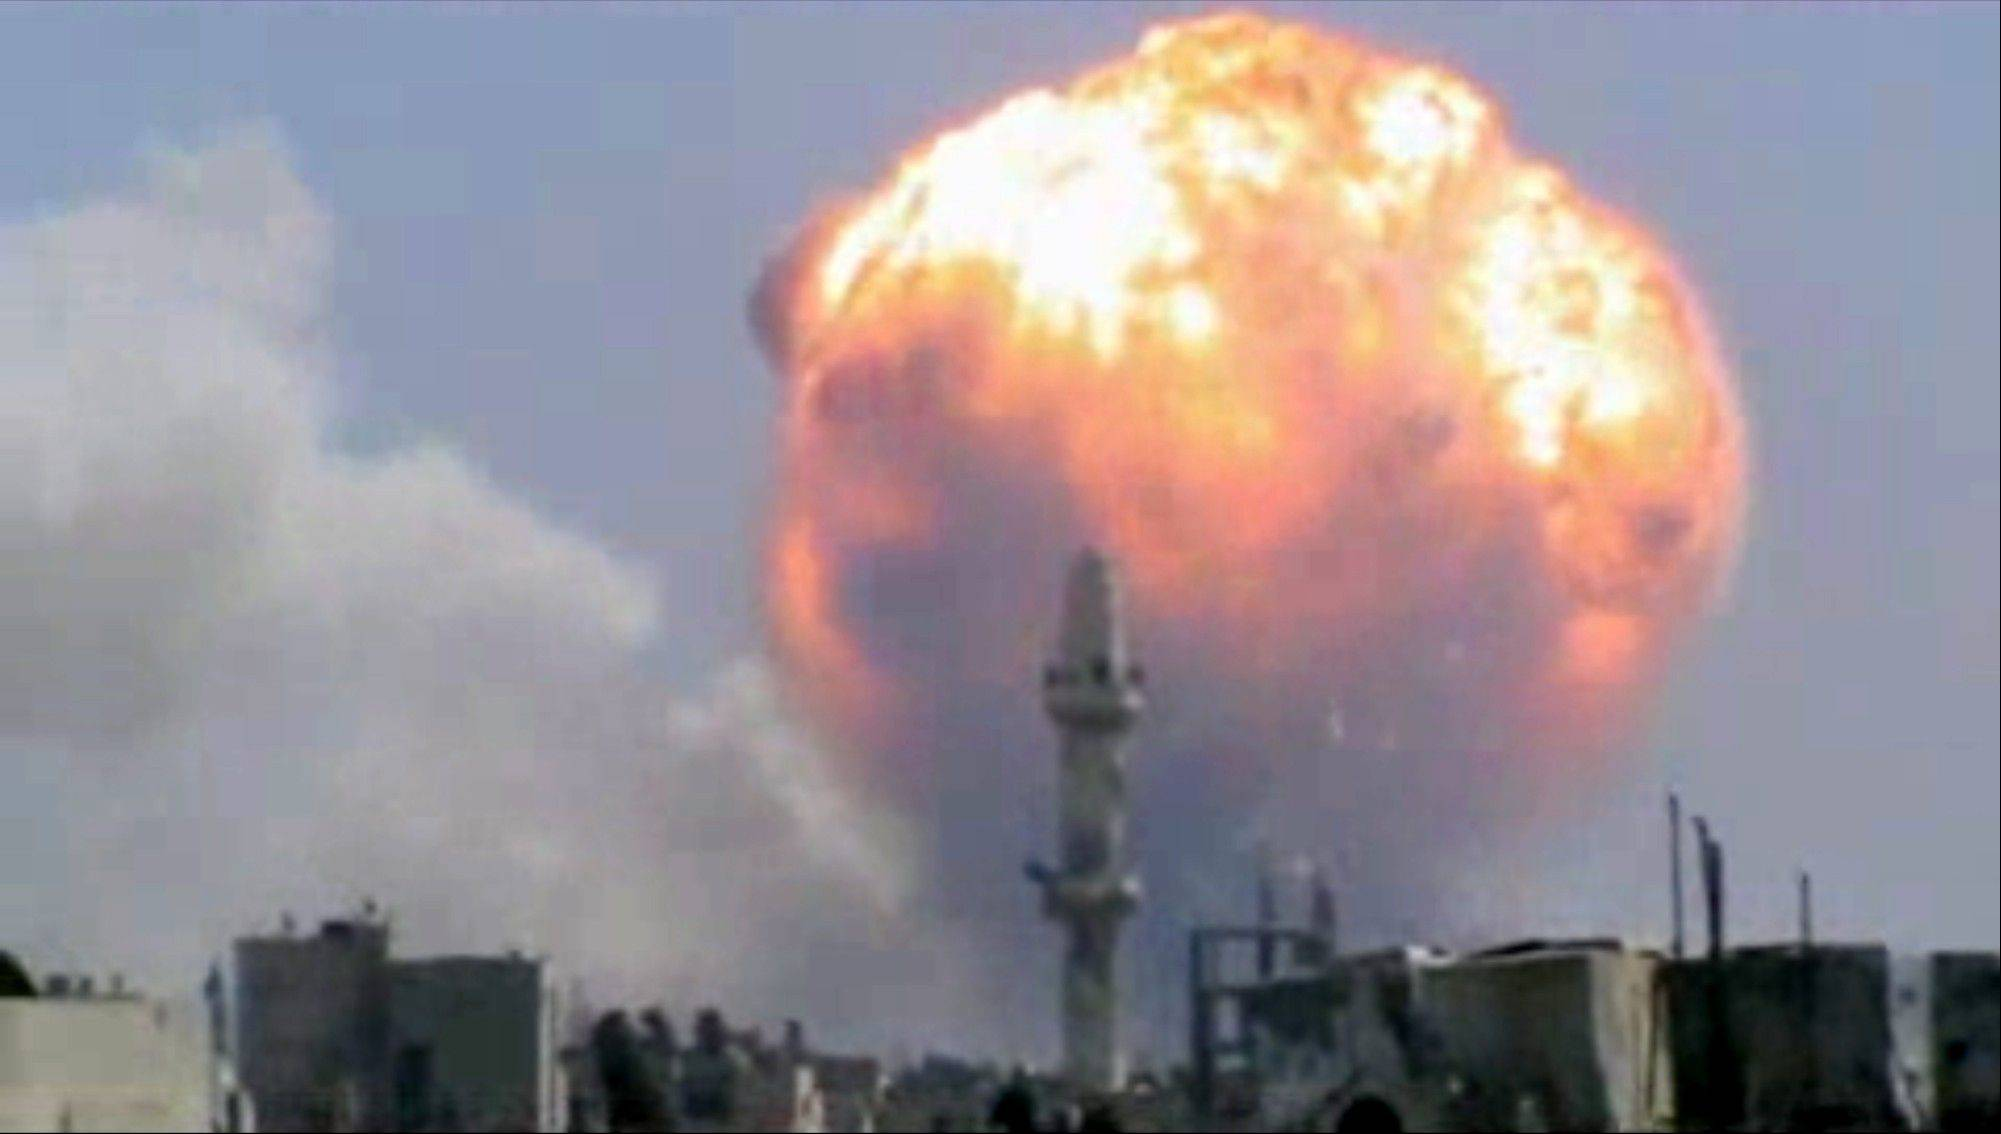 In this image taken from video posted by Ugarit News, which has been authenticated based on its contents and other AP reporting, purports to show a fireball from an explosion at a weapons depot set off by rocket attacks that struck government-held districts in the central Syrian city of Homs on Thursday, Aug. 1, 2013. The blasts sent a massive ball of fire into the sky, killing scores and causing widespread damage and panic among residents, many of whom are supporters of President Bashar Assad.